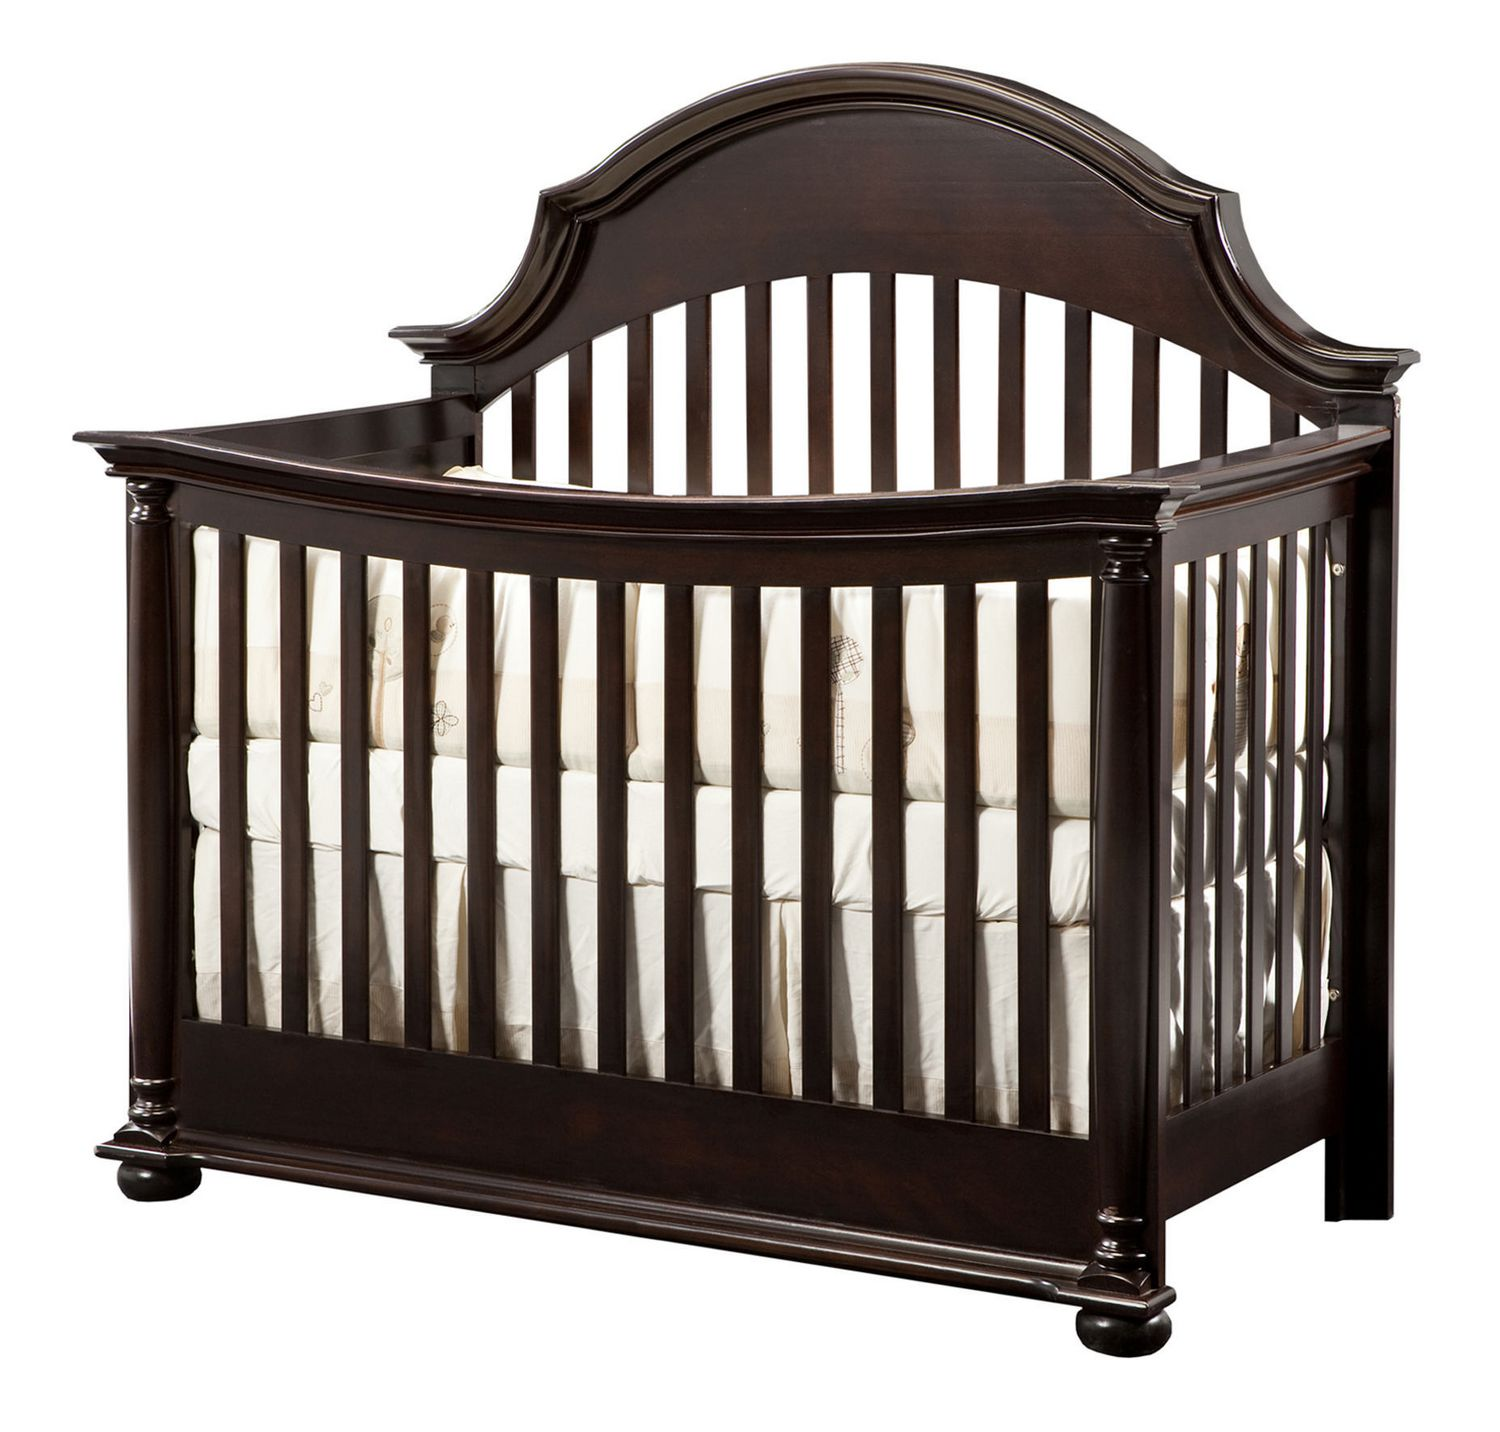 Used crib for sale ottawa - Shermag Penelope Espresso 4 1 Crib